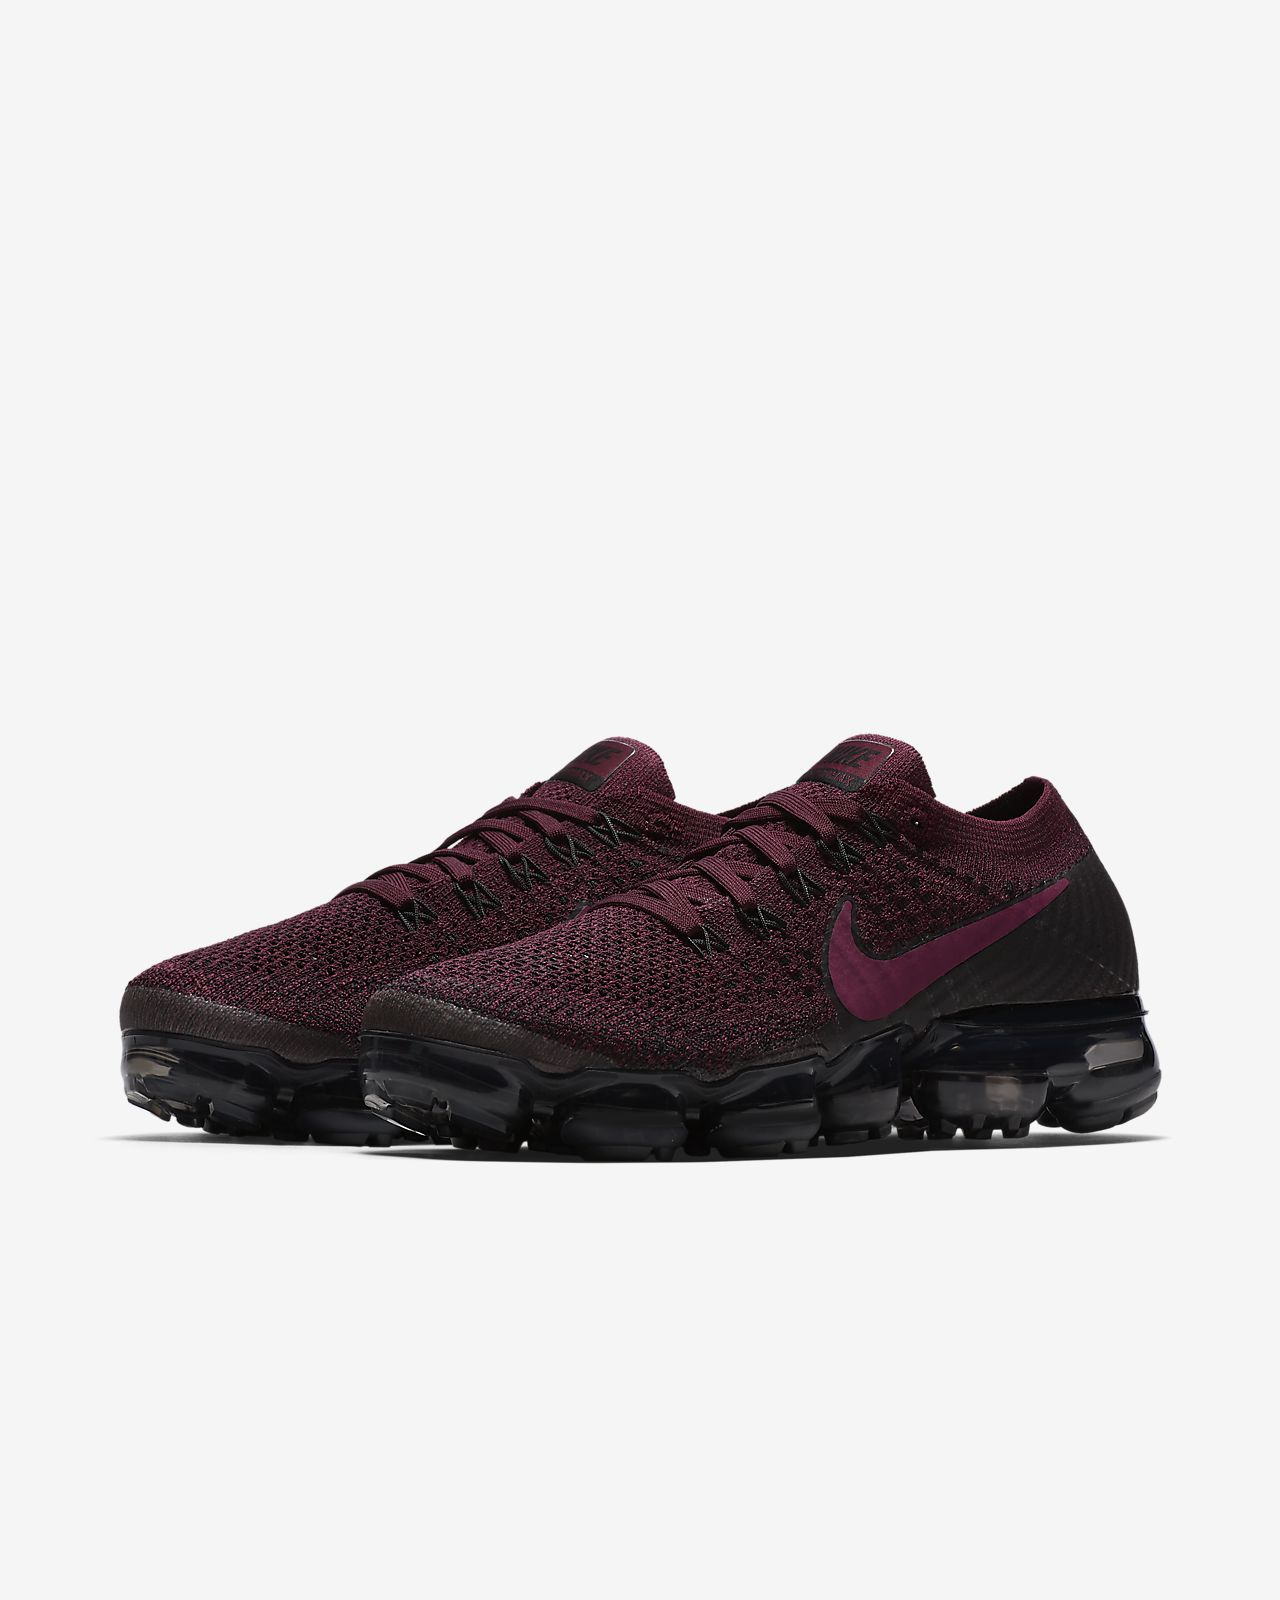 8c30586389 Nike Air VaporMax Flyknit Women's Running Shoe | Runners fashion ...